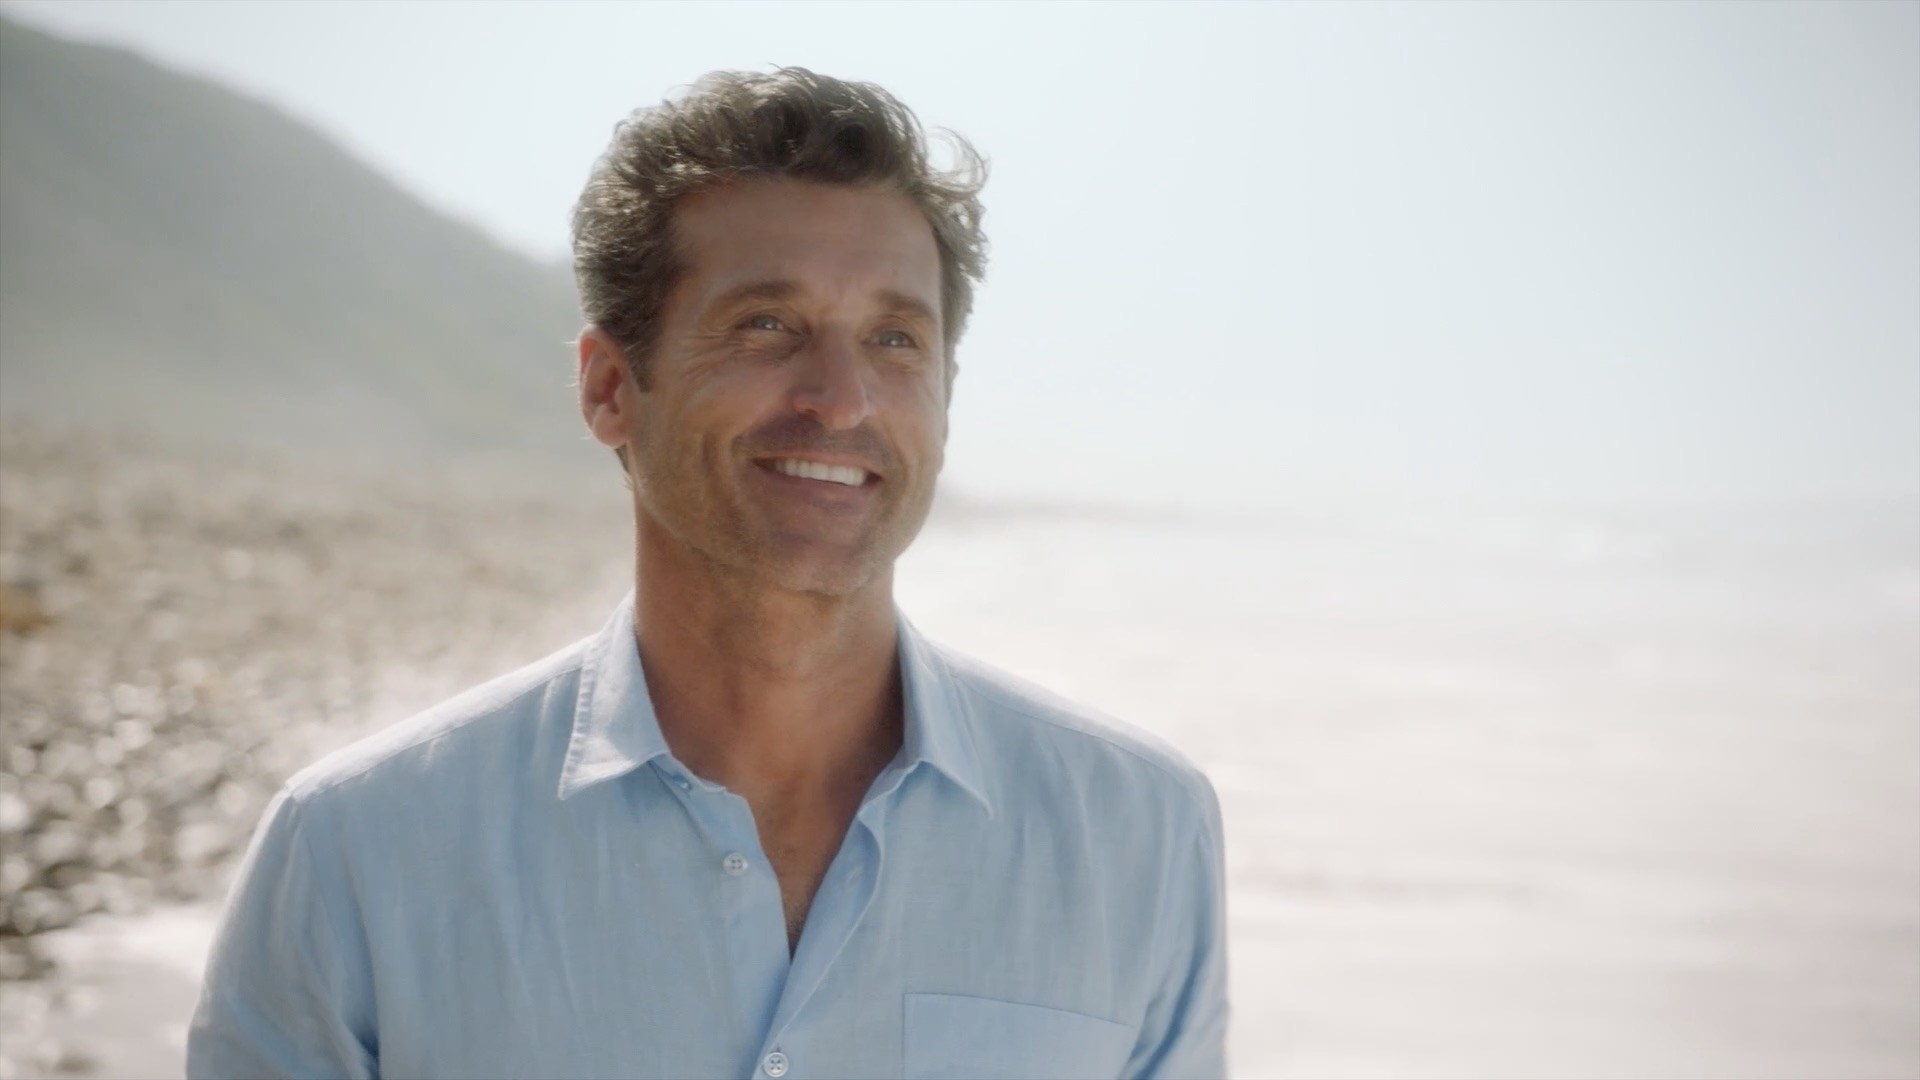 Derek on a beach saying hello to Meredith after she collapses.